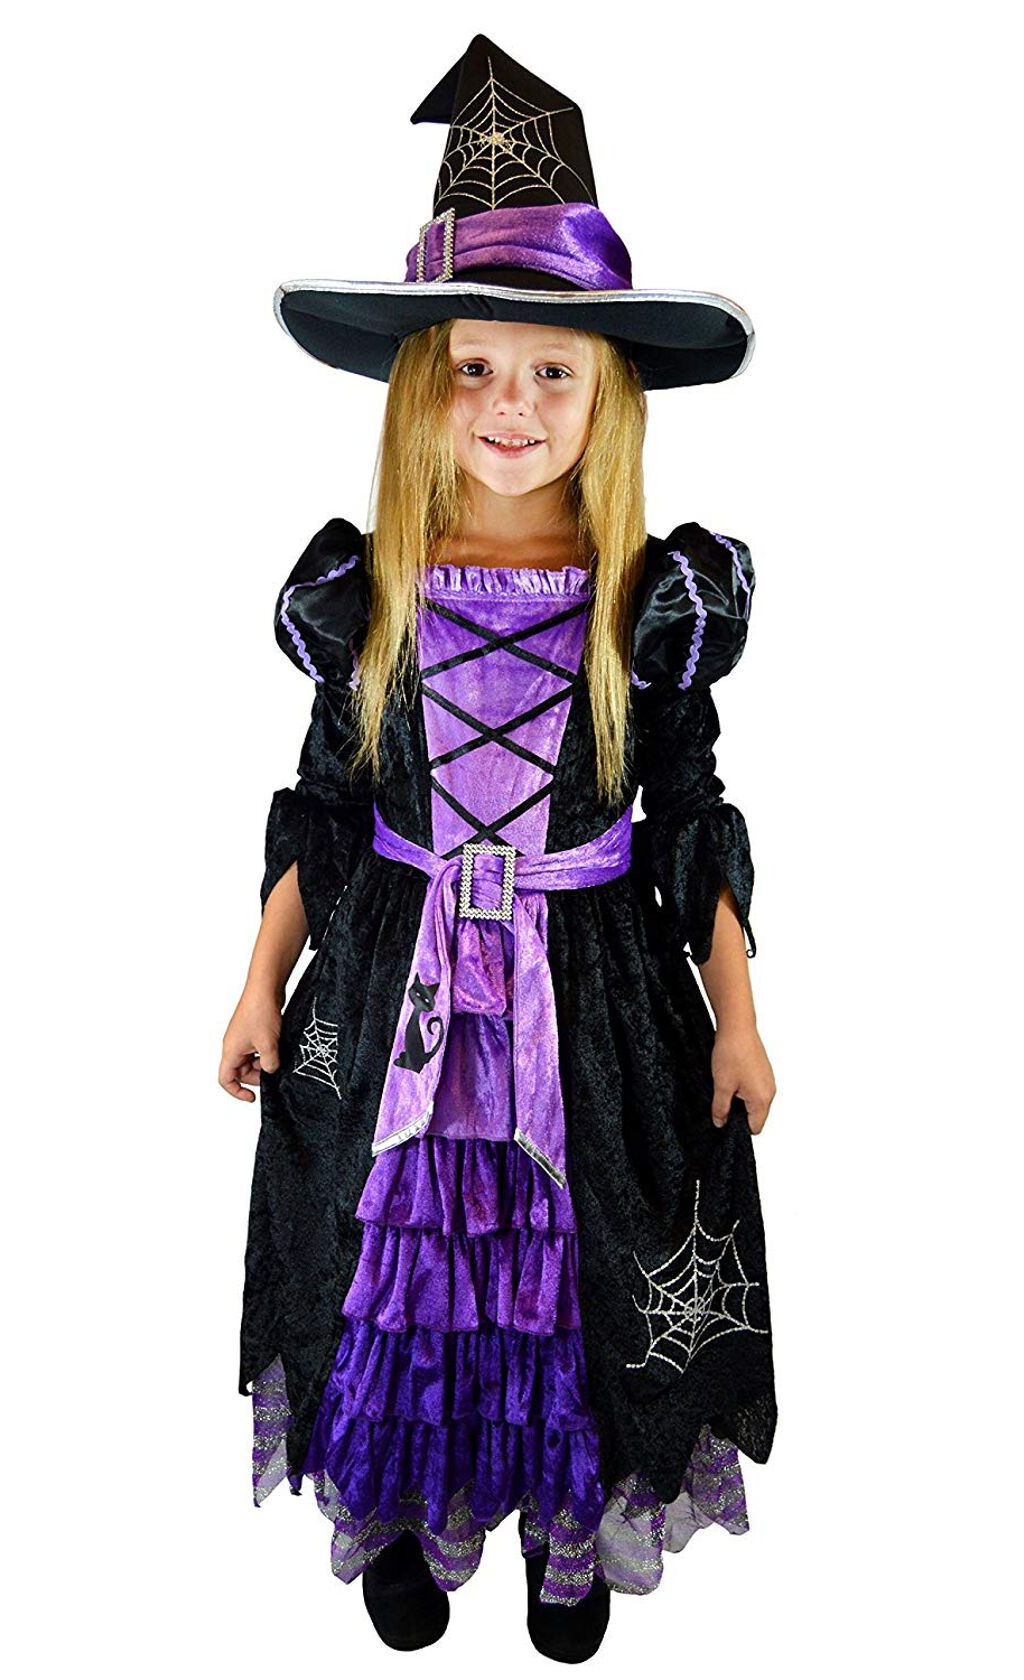 Cute Halloween Costumes for Girls